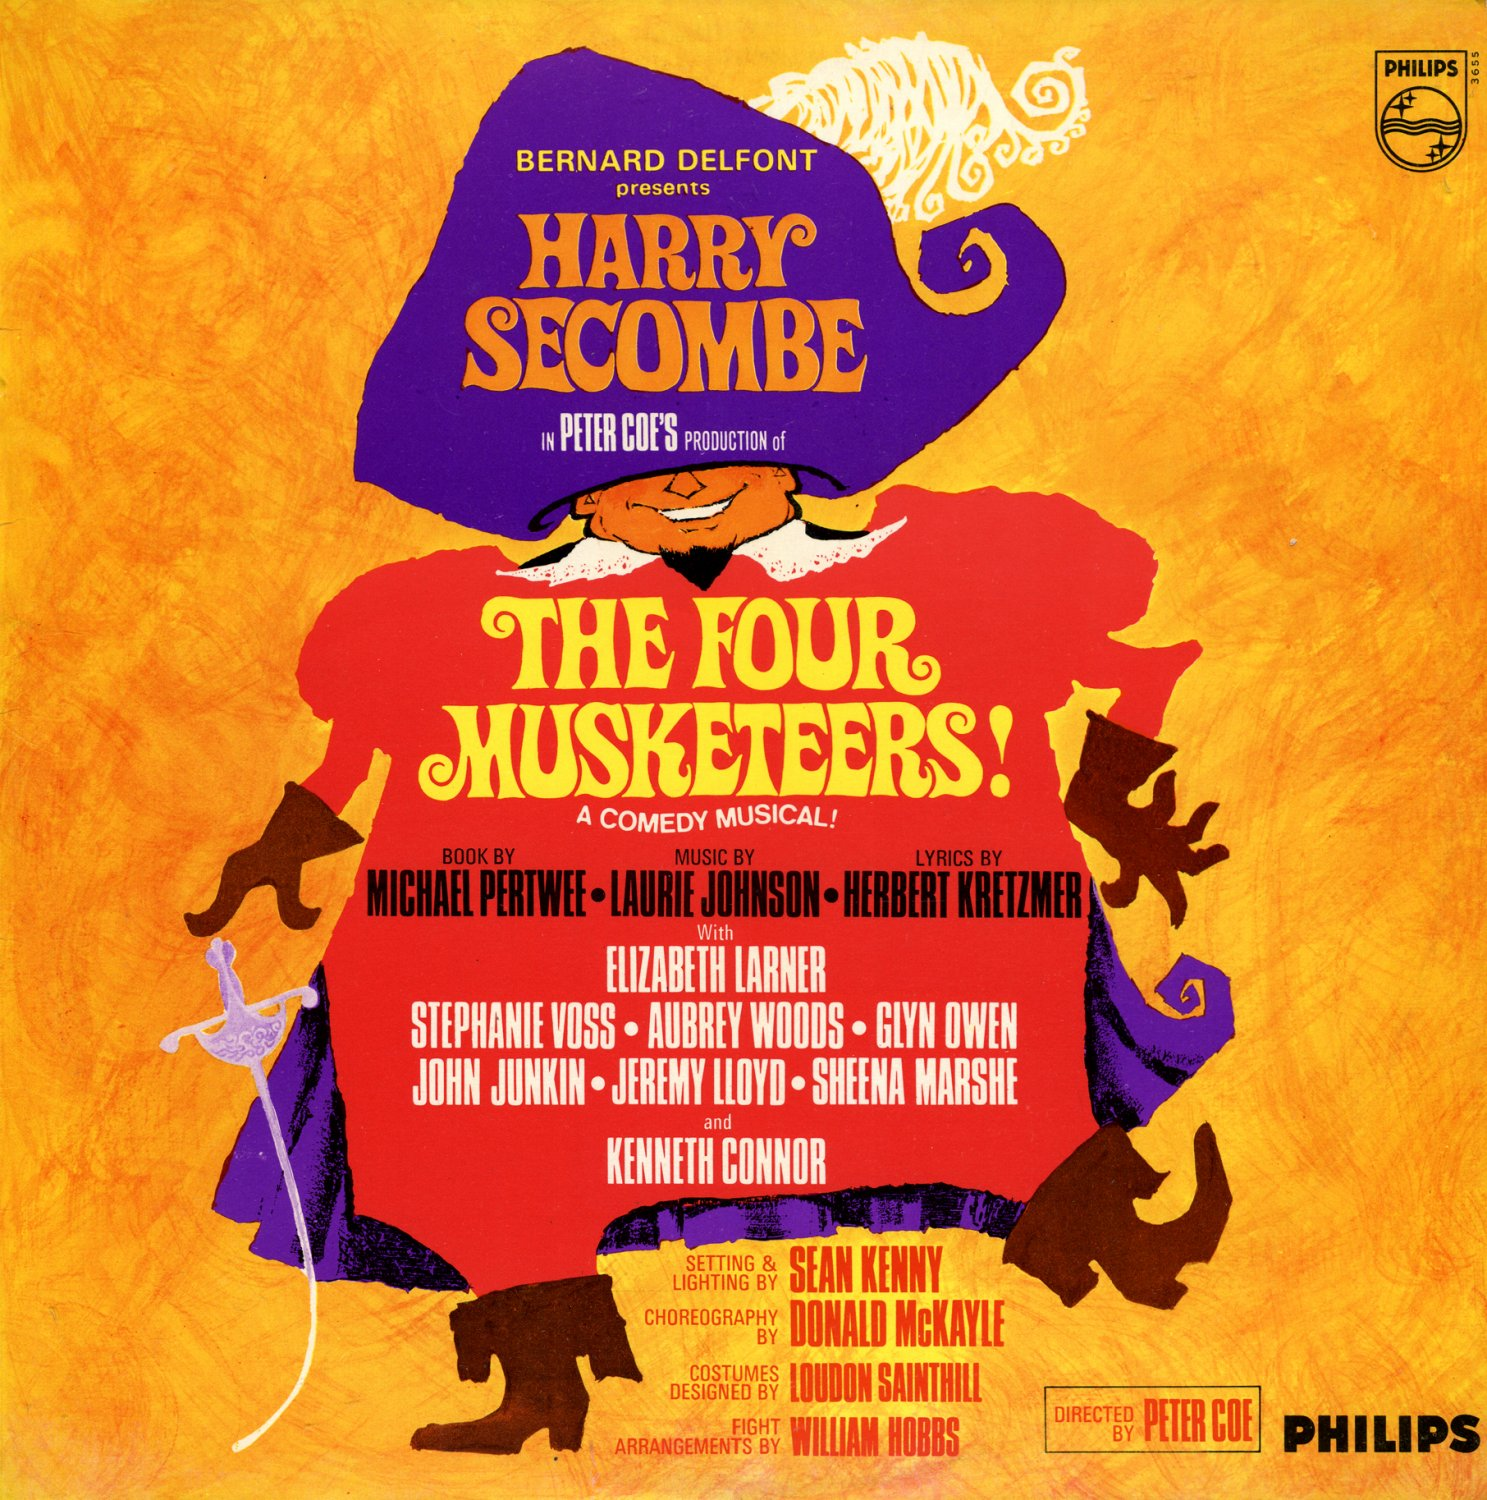 The Four Musketeers! - A Comedy Musical, Harry Secombe OST LP/CD